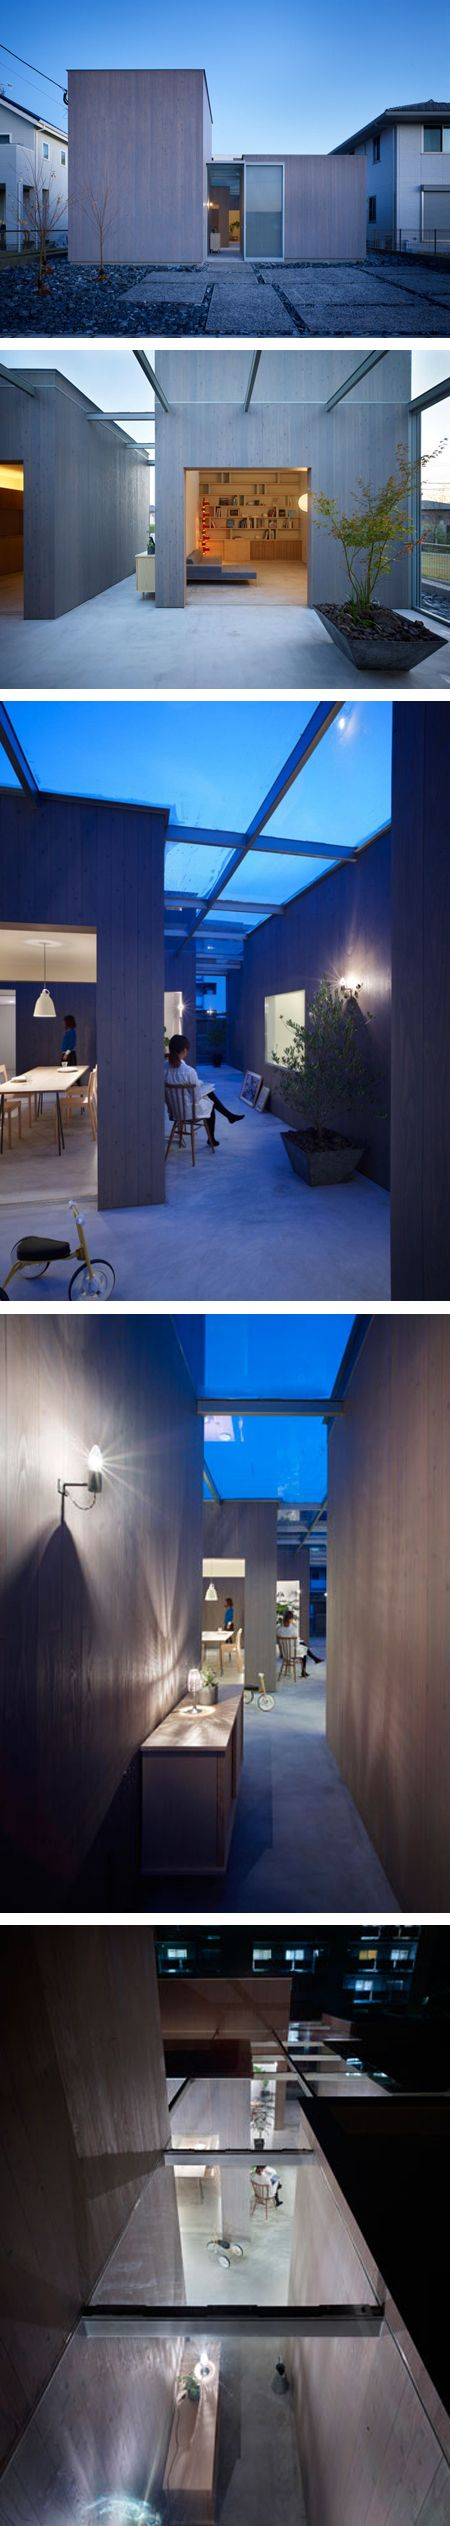 Buzen house, Fukuoka, Japan by Suppose Design Office. The aim was to design a house for the kids to enjoy. They use outside space to its full potential and make equal the relationship between inside and out by using the courtyard as a part of everyday life, bringing inside activities outside.